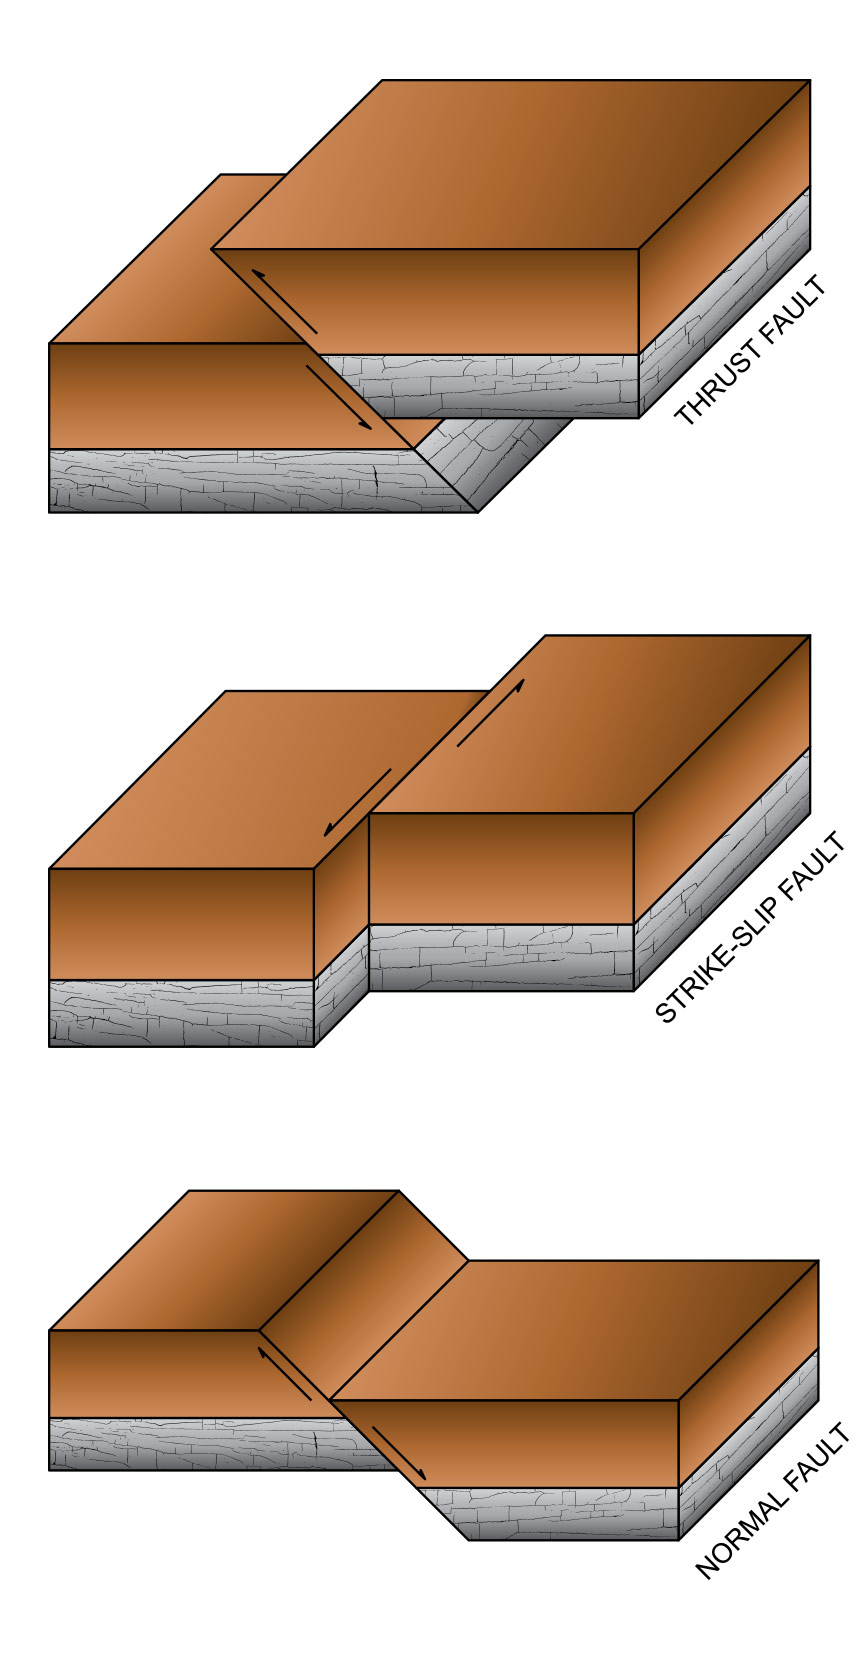 geological faults illustratio